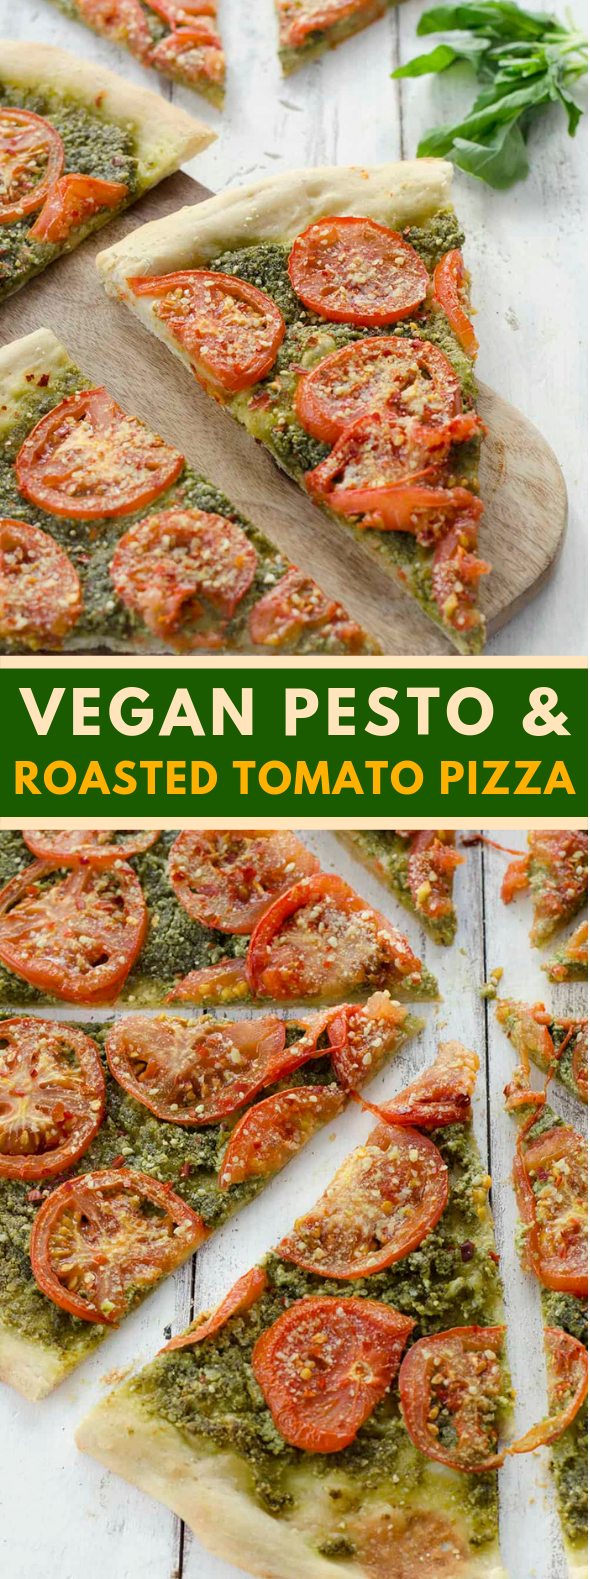 Photo of Vegan Pesto and Roasted Tomato Pizza #bettereats #healthyrecipes